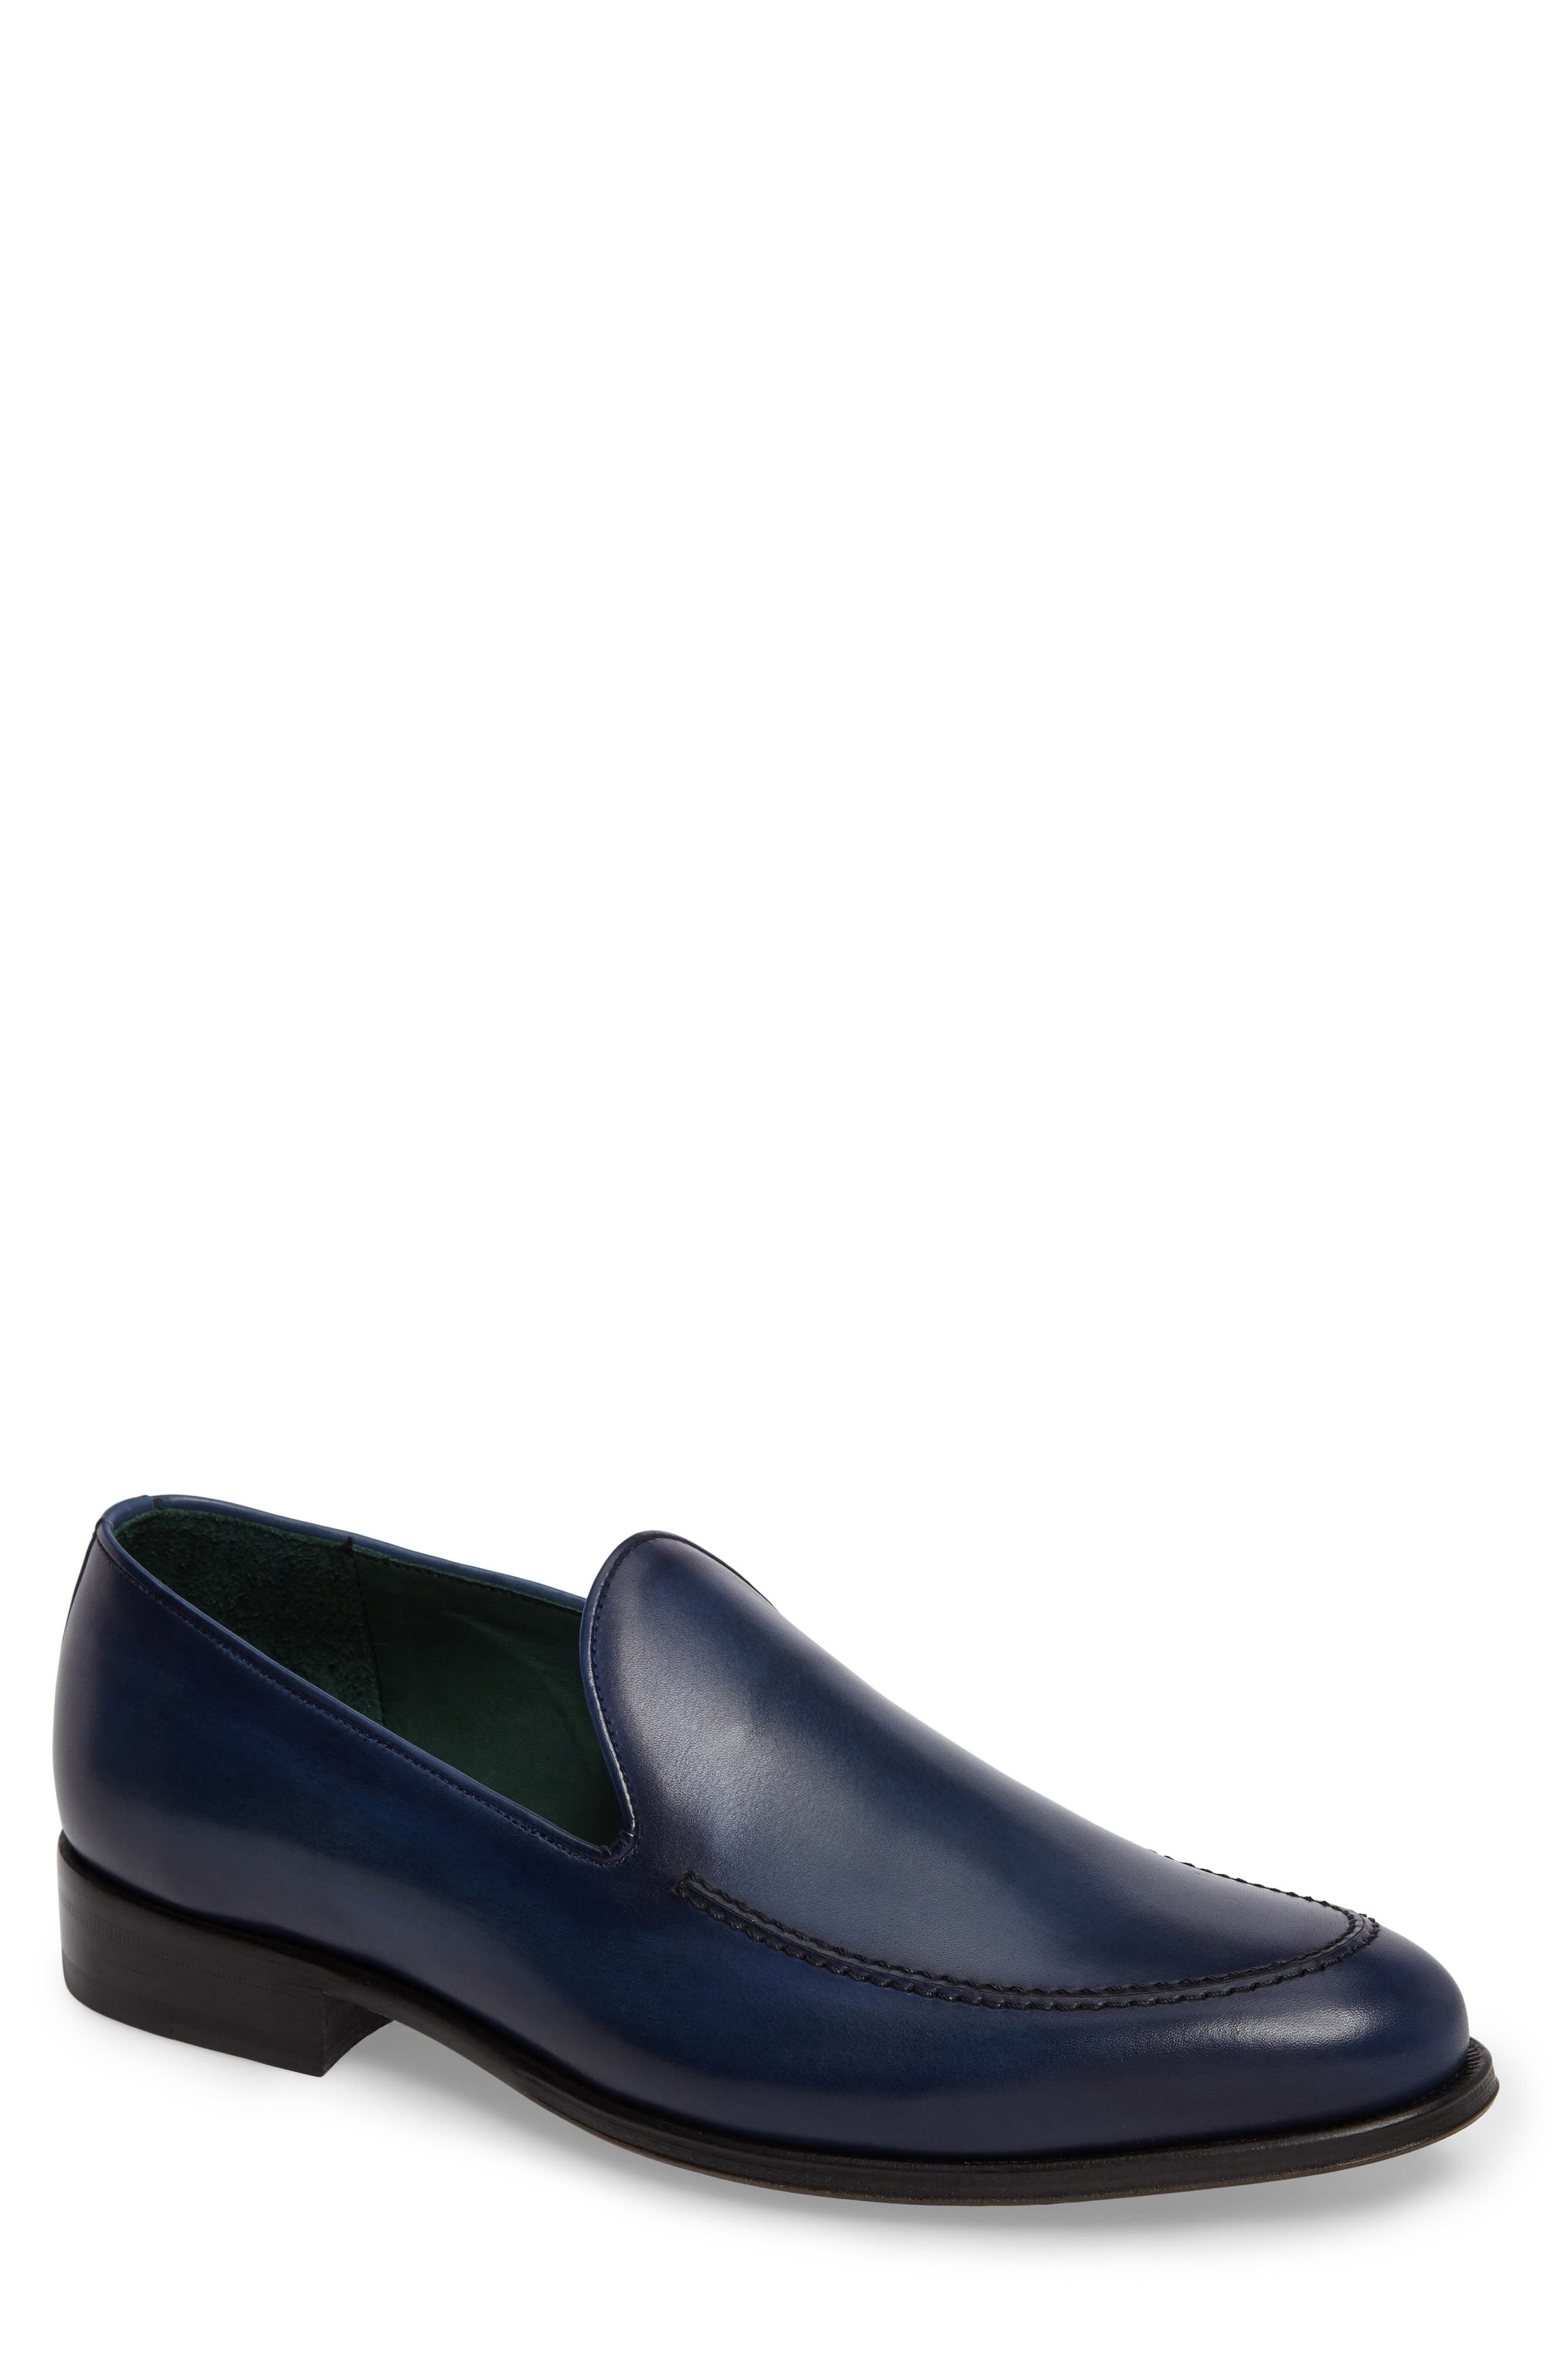 MEZLAN Rodin Apron Toe Loafer in Mid Blue Leather